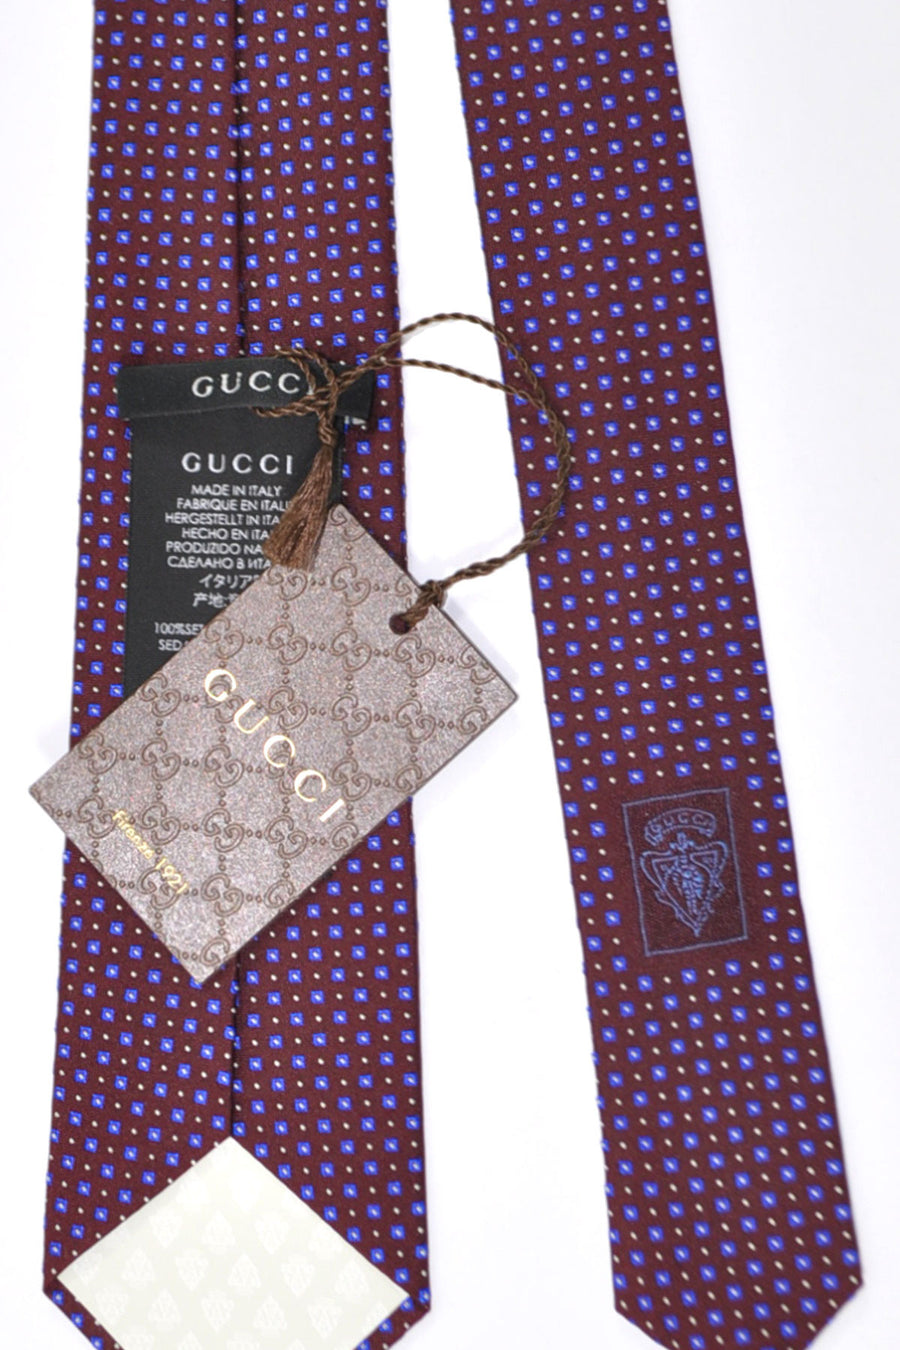 Gucci Tie Maroon Royal Blue Silver Geometric Design